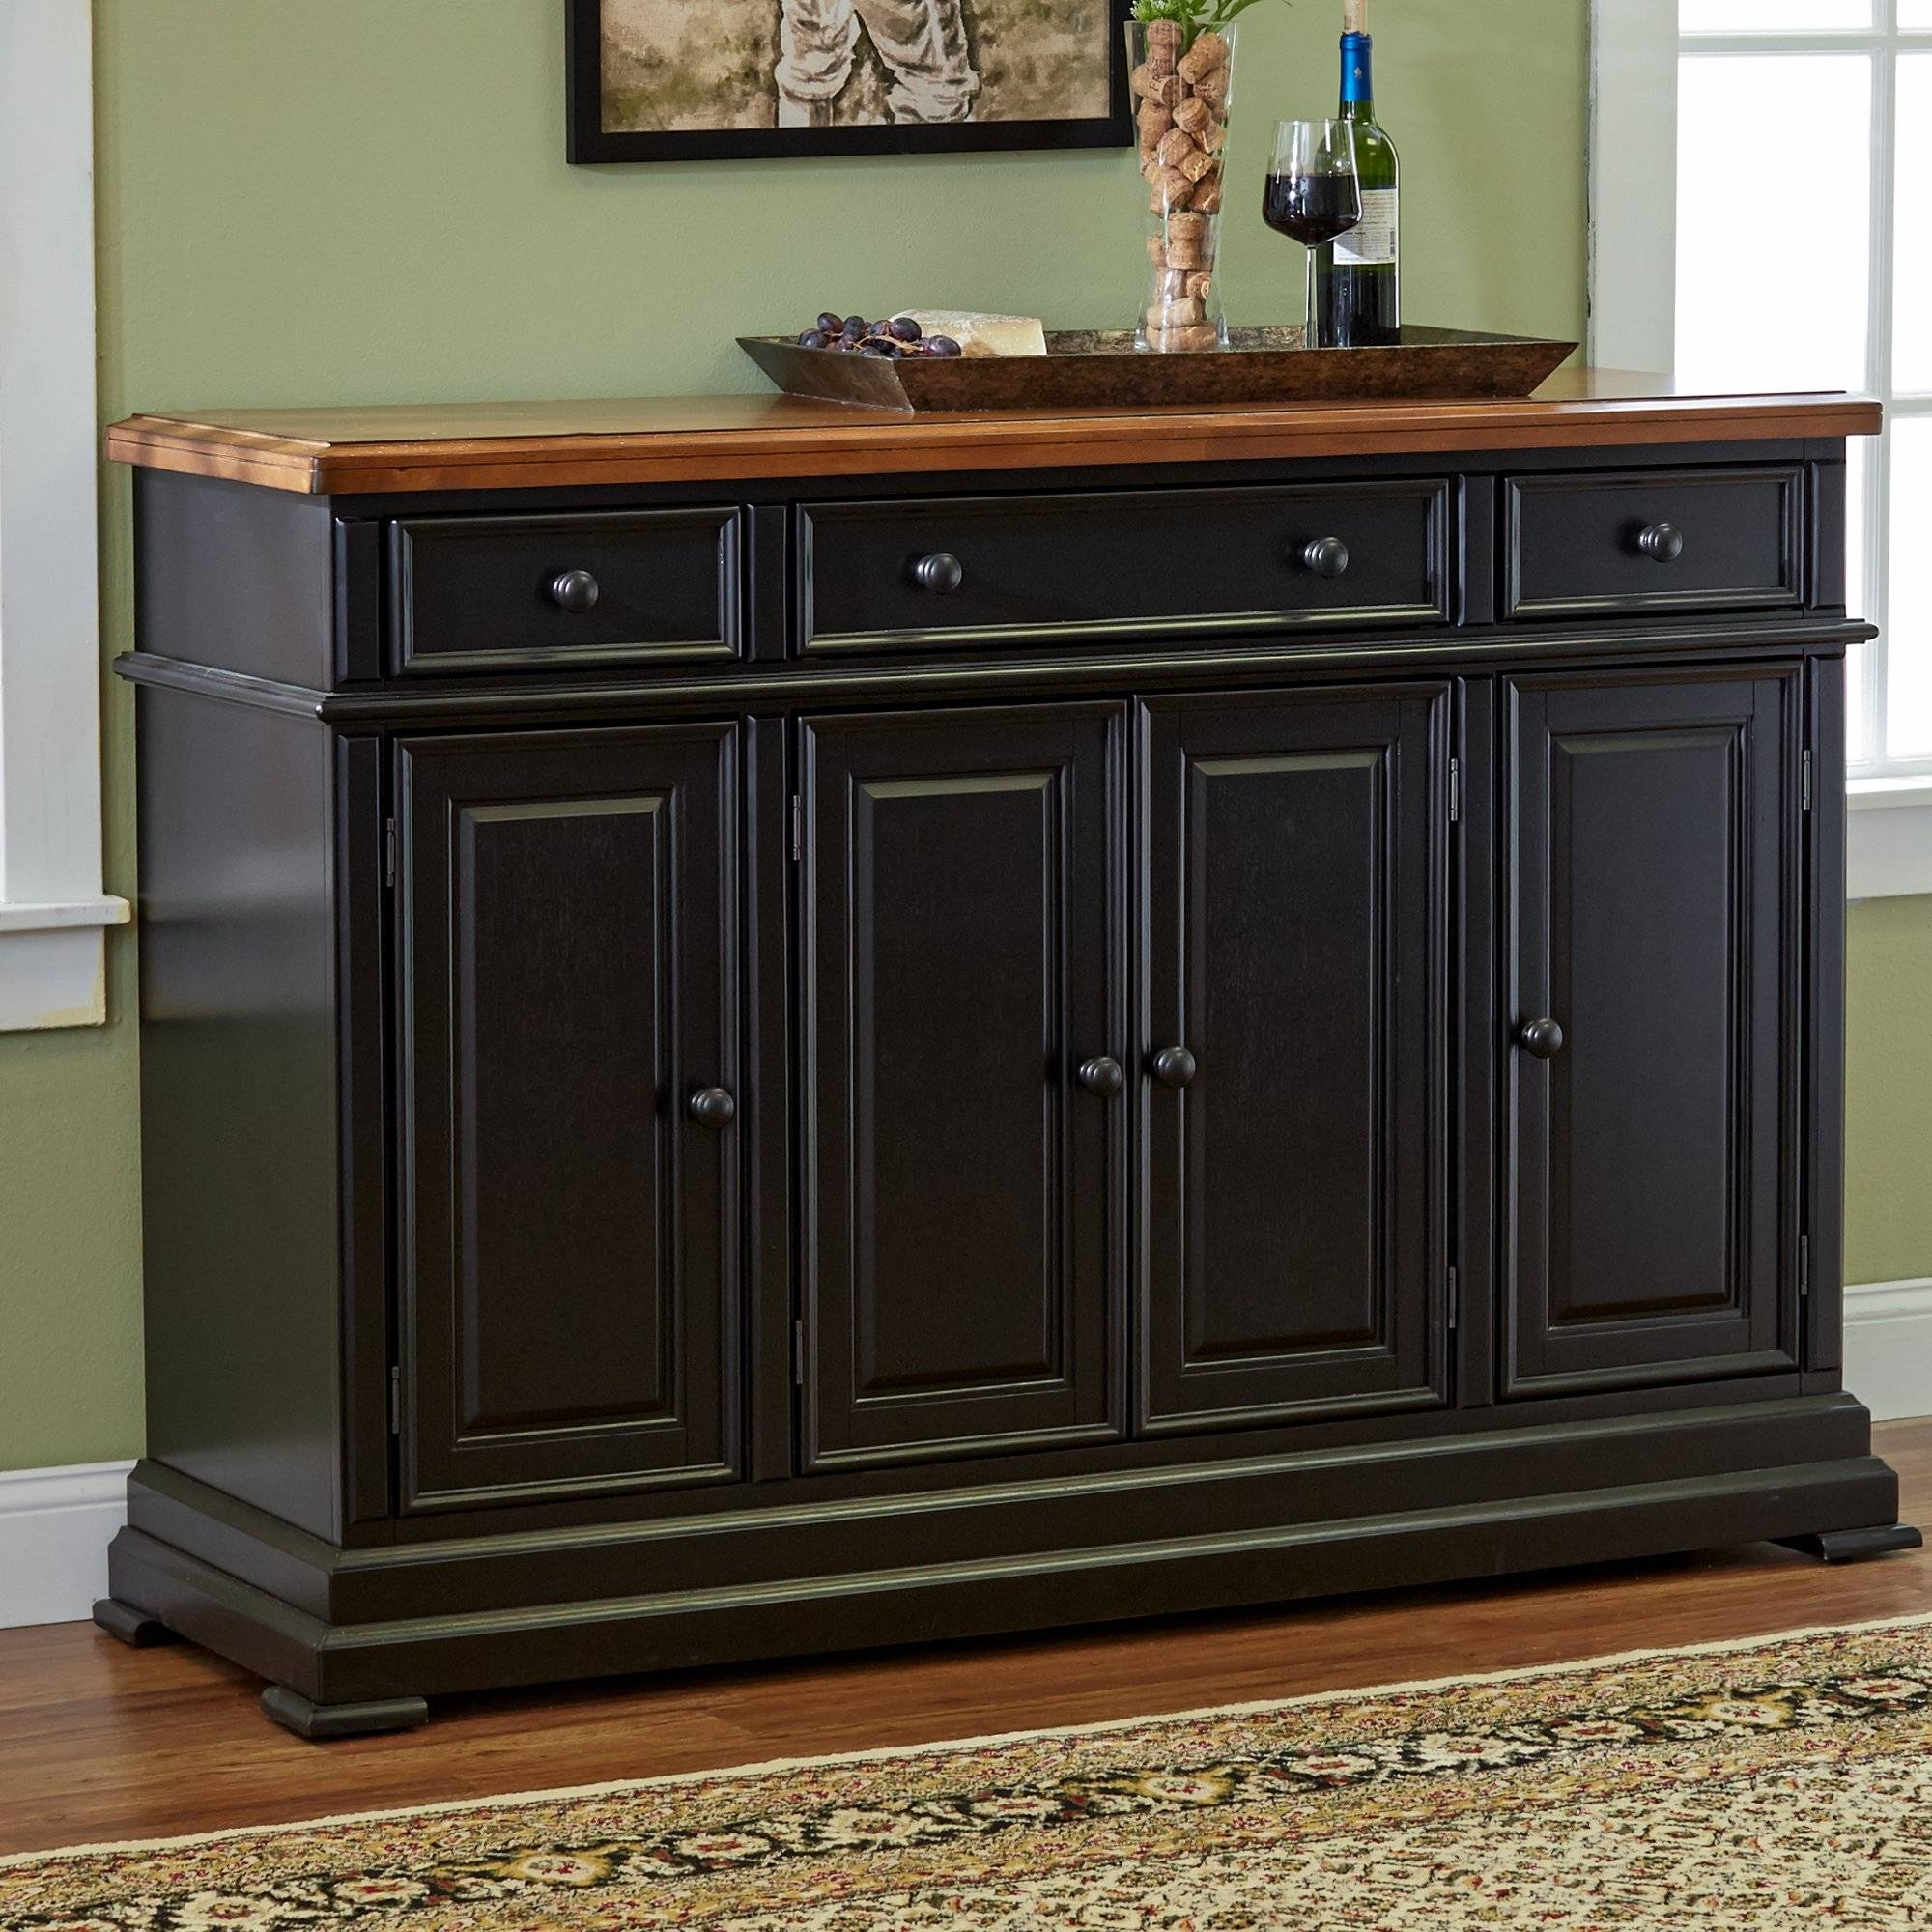 Luxury Rustic Sideboard Buffet – Bjdgjy Pertaining To Newest Rustic Sideboards Buffets (#4 of 15)